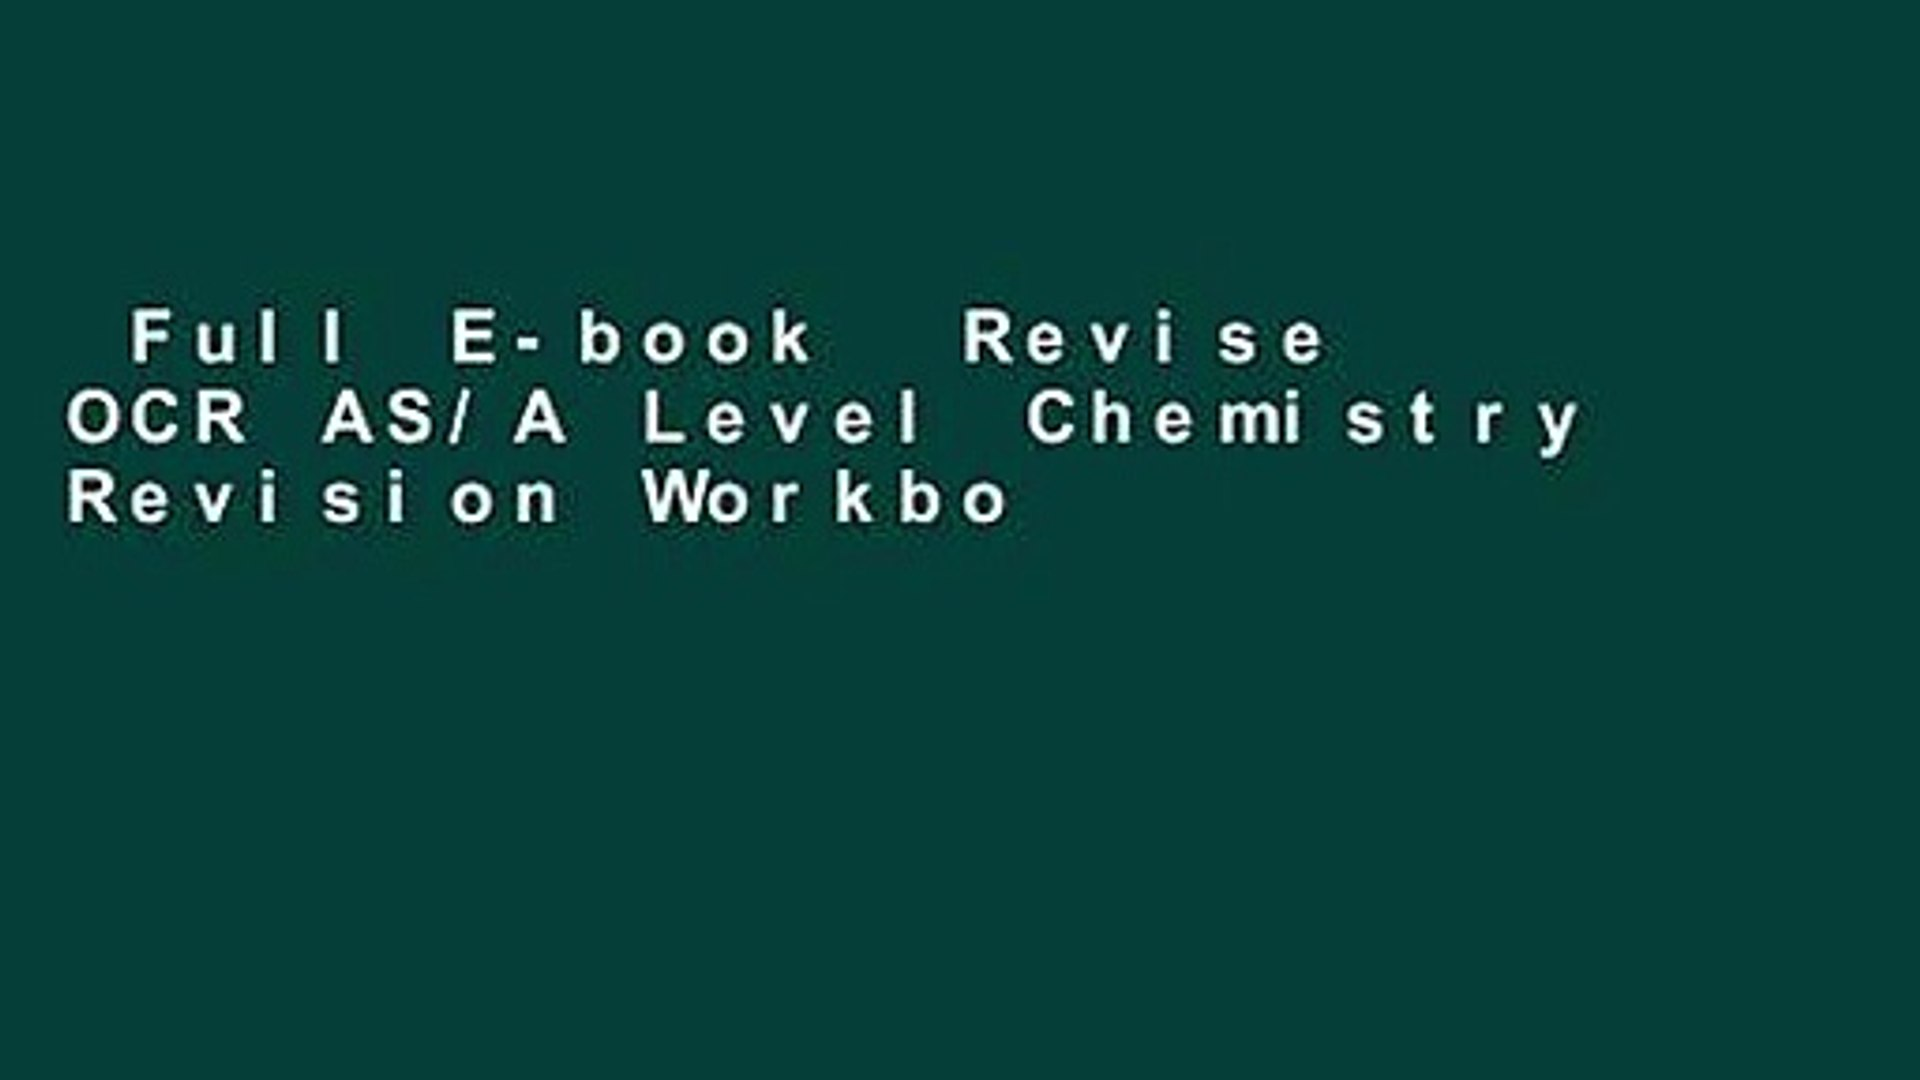 Full E-book Revise OCR AS/A Level Chemistry Revision Workbook (REVISE OCR  GCE Science 2015) For